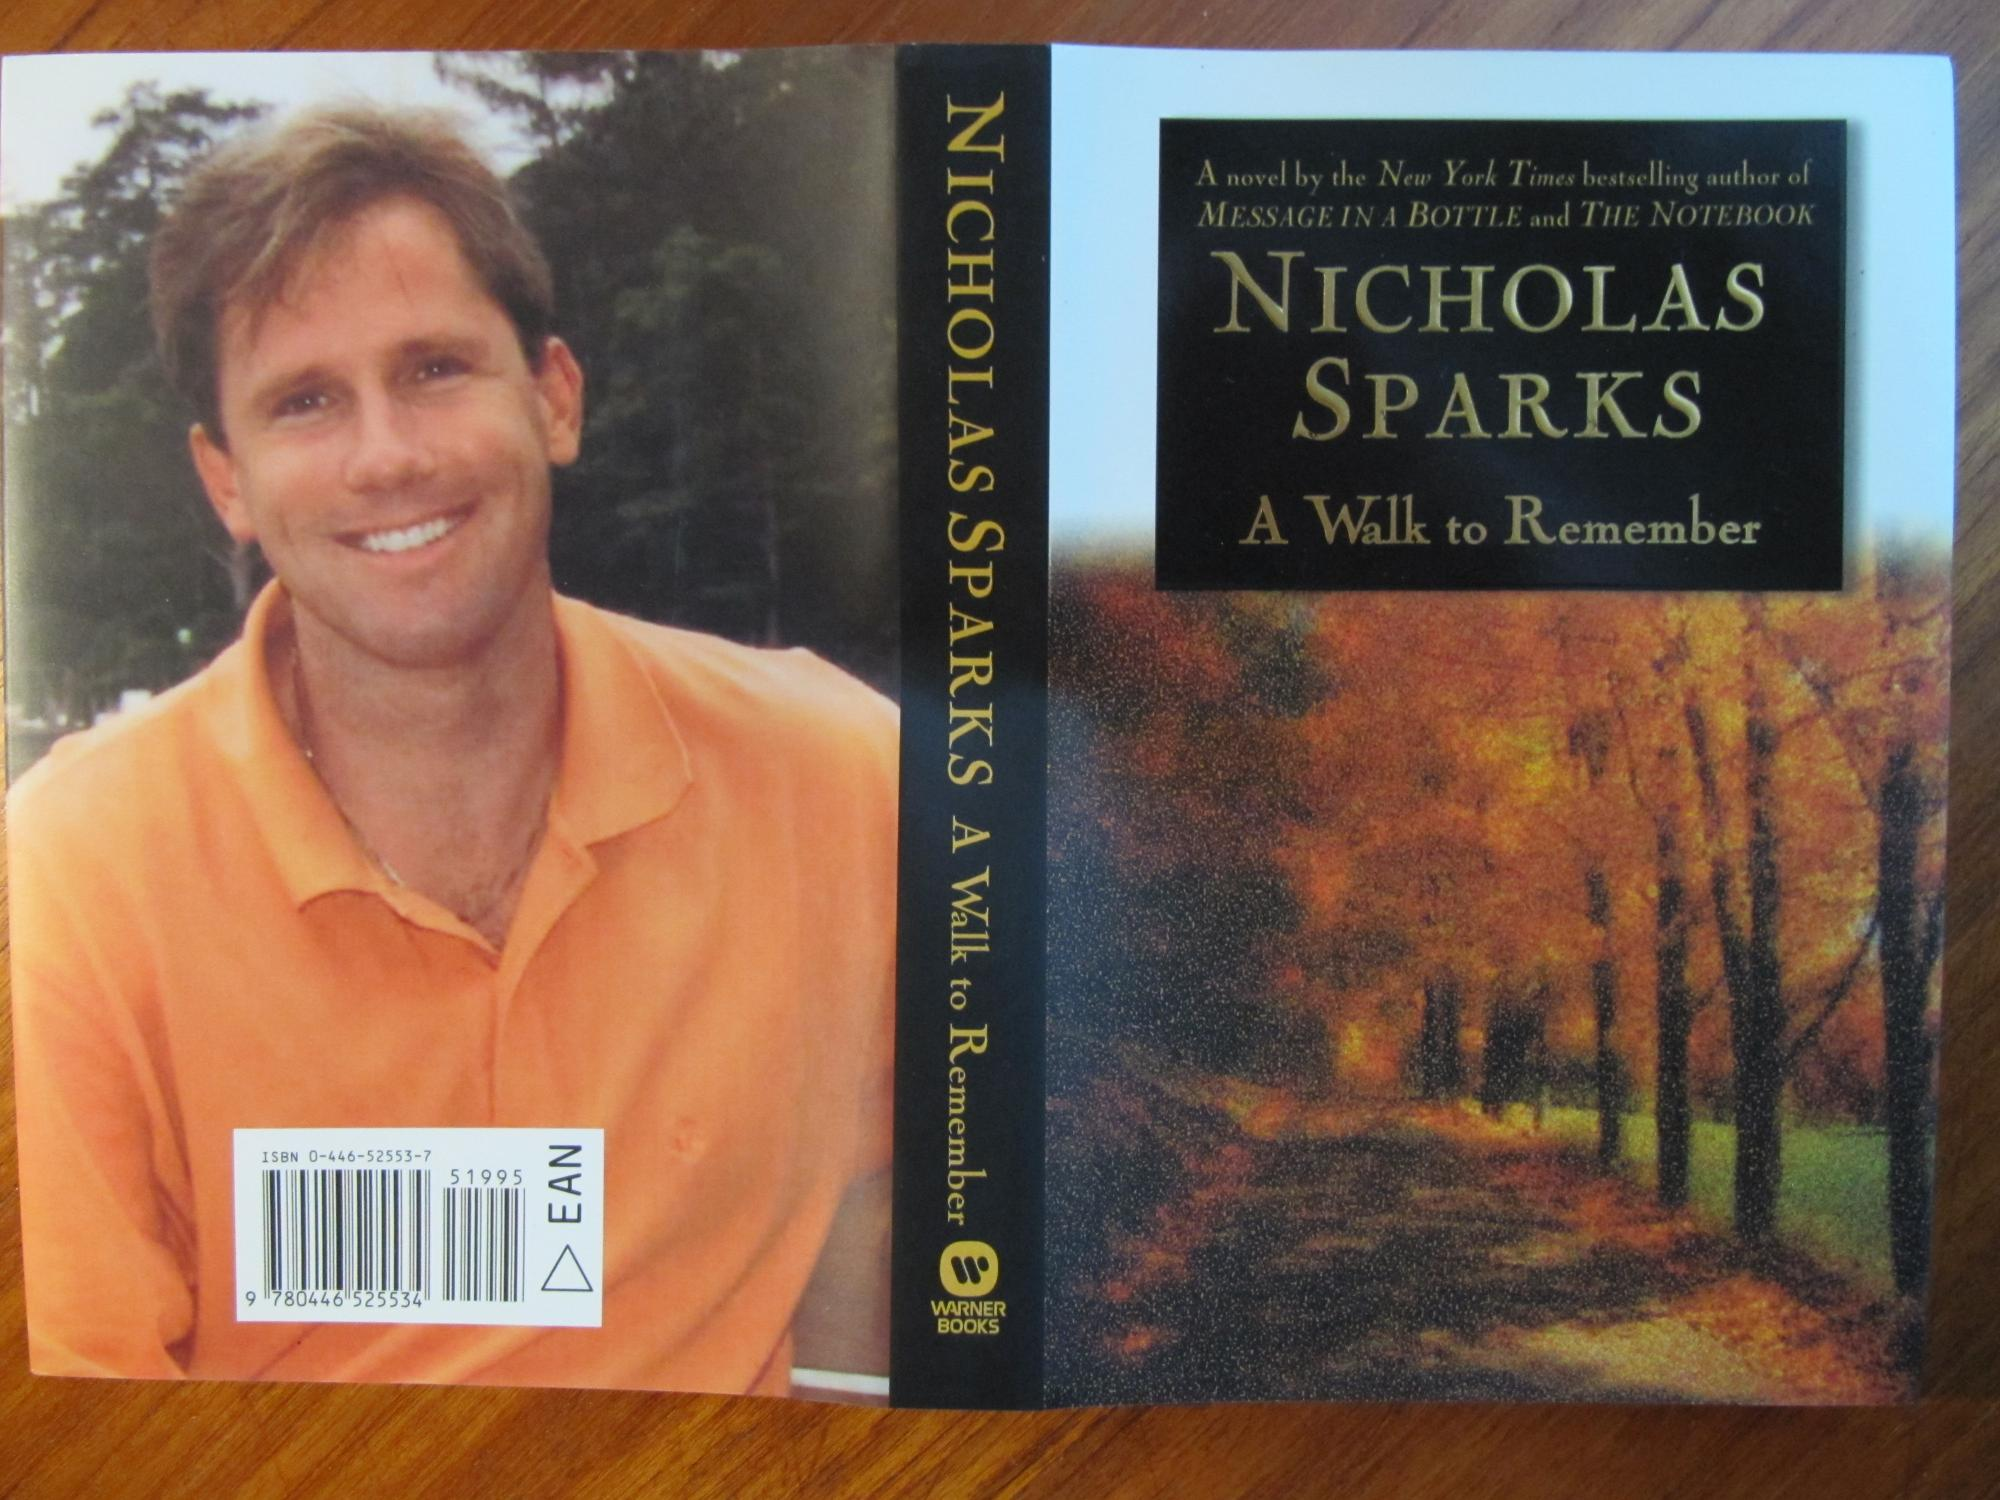 a walk to remember first edition as new un a walk to remember 031 first edition as new un unopened 031 by sparks nicholas 3rd novel by the author of the notebook and message in a